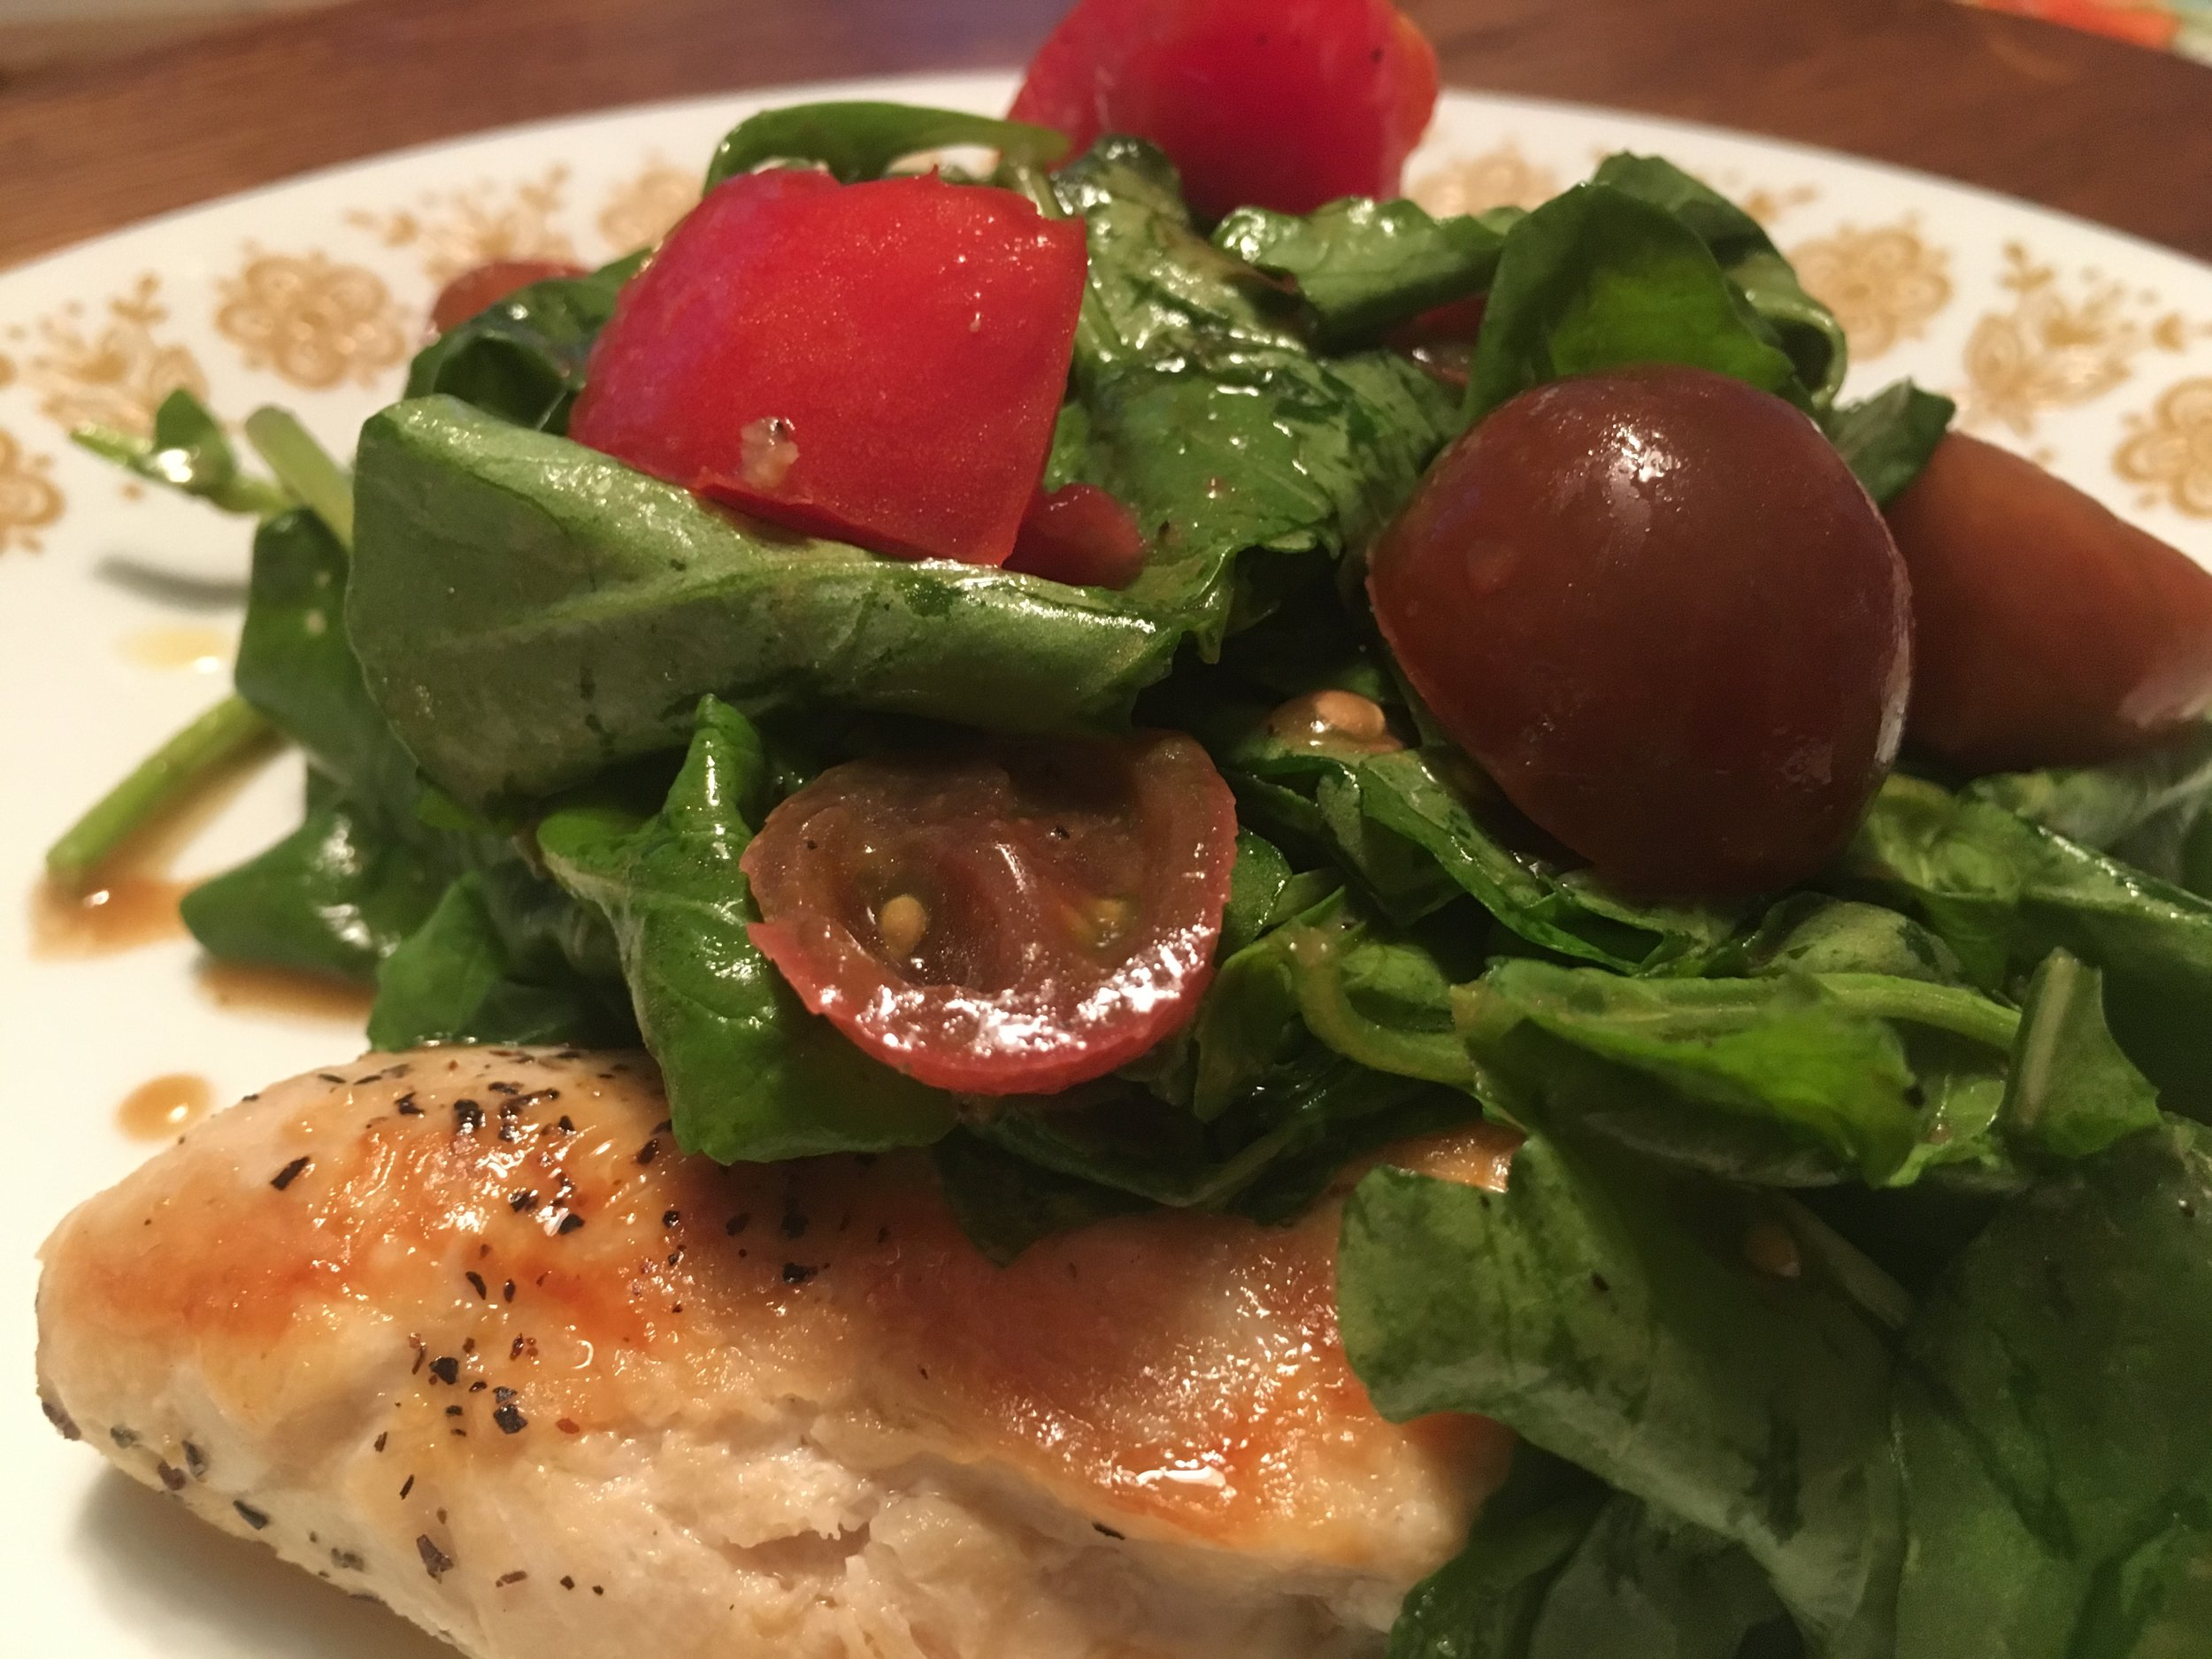 Chicken Paillard With Tomato And Arugula Salad 5 Seasons Diet